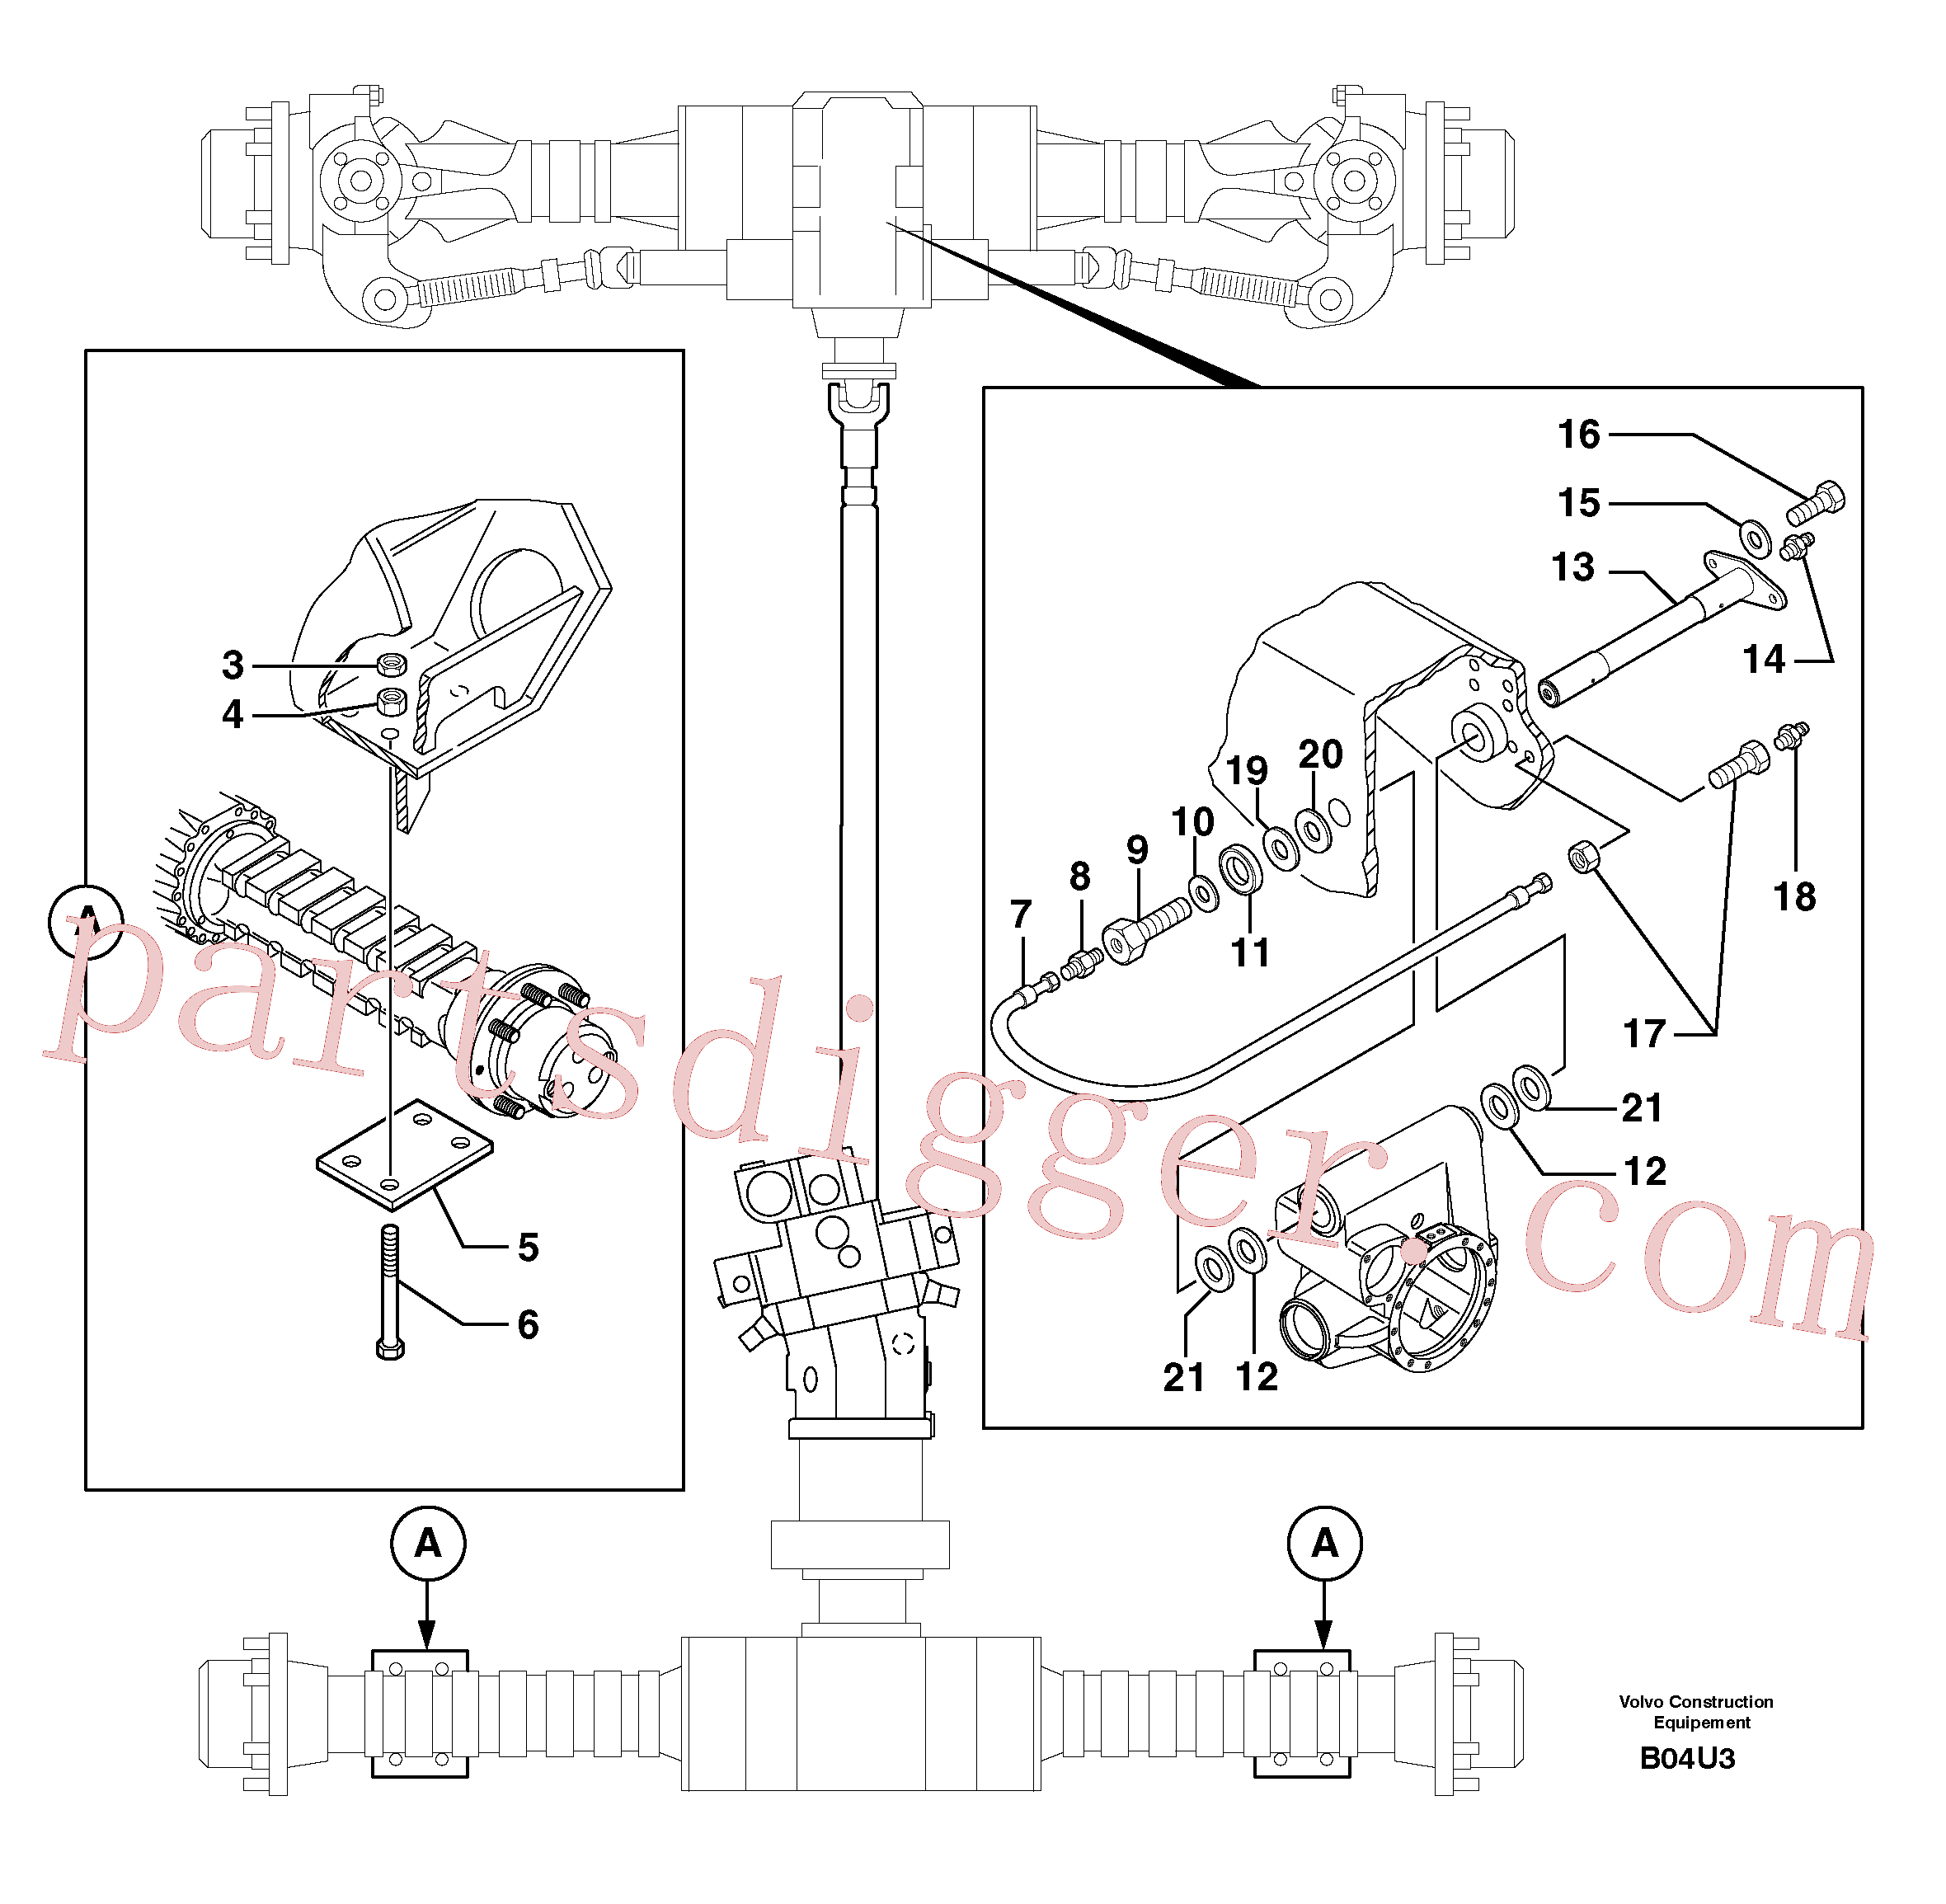 ZM7098421 for Volvo Axle cradles and mountings(B04U3 assembly)